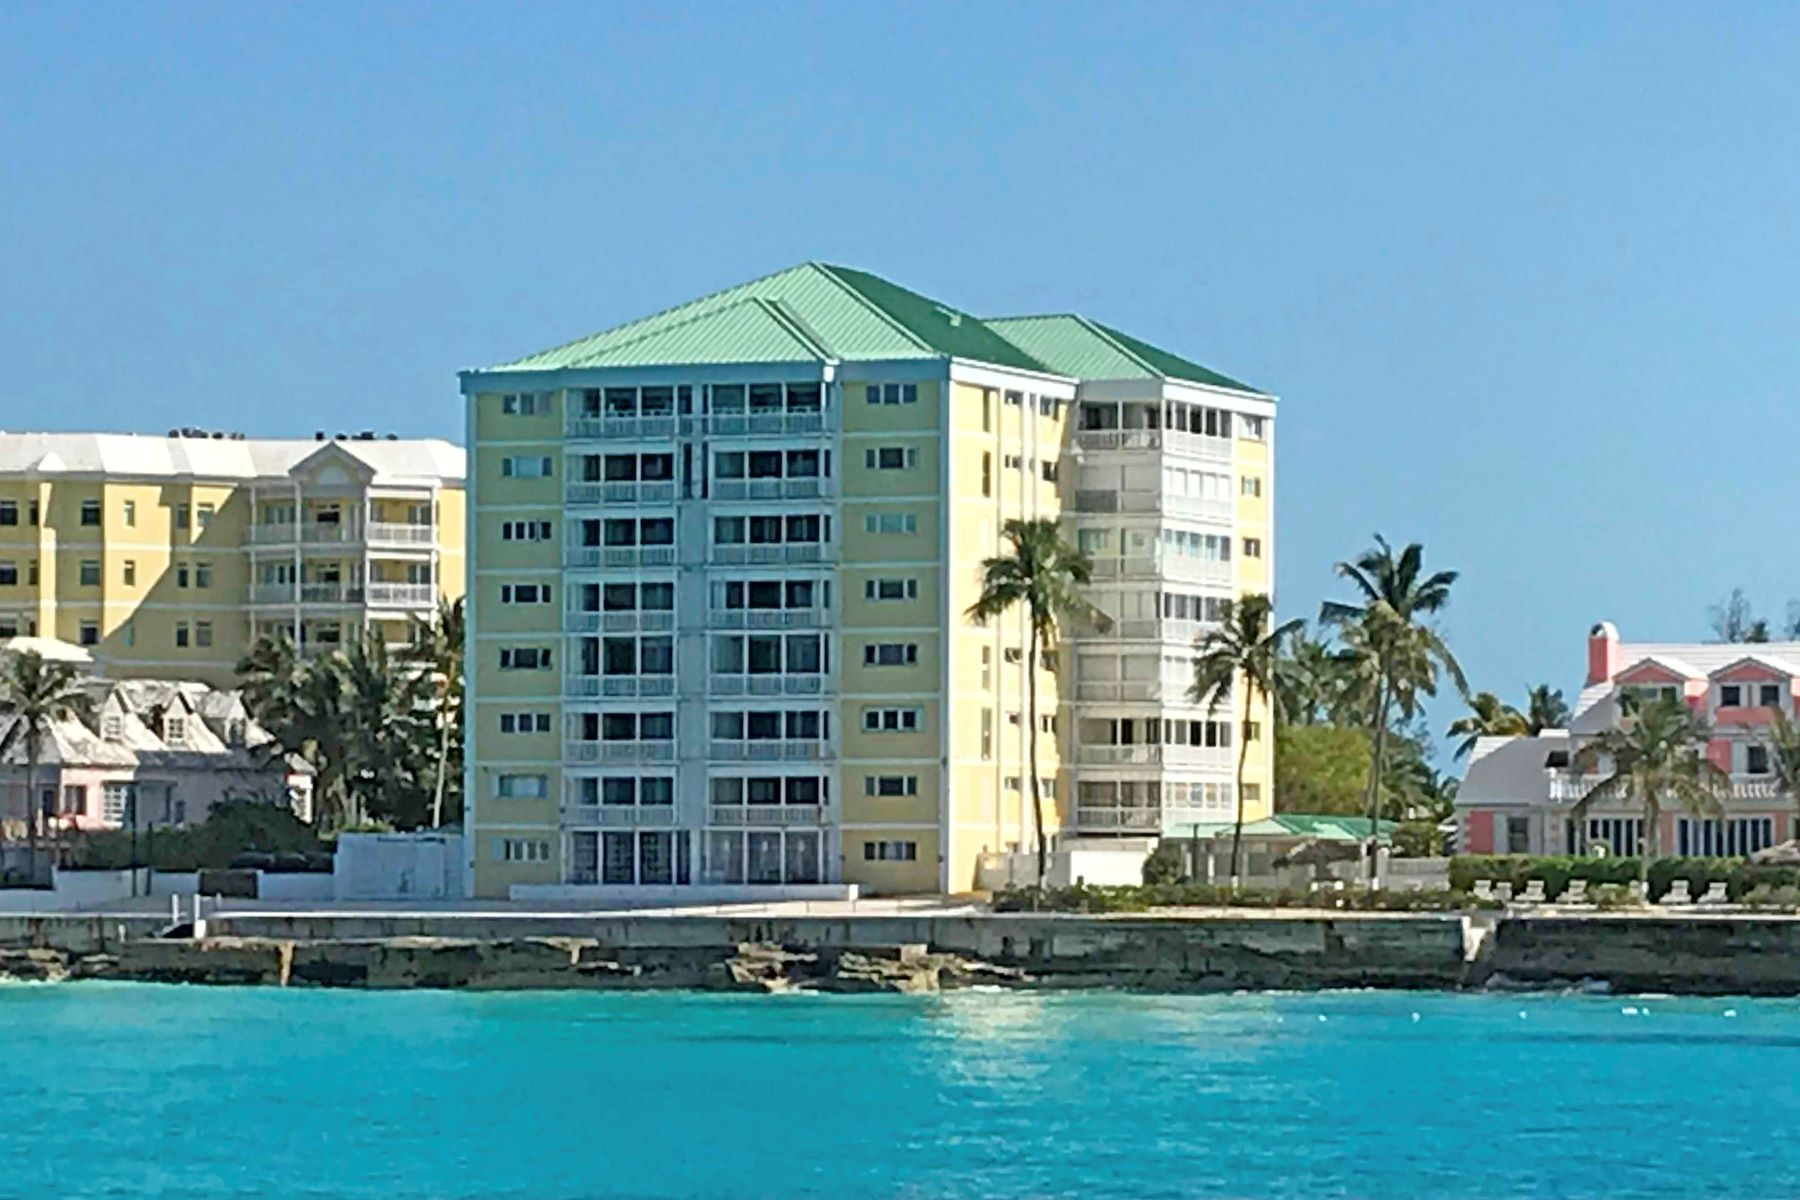 Condominium for Sale at Conchrest Penthouse Conchrest, Cable Beach, Nassau And Paradise Island Bahamas